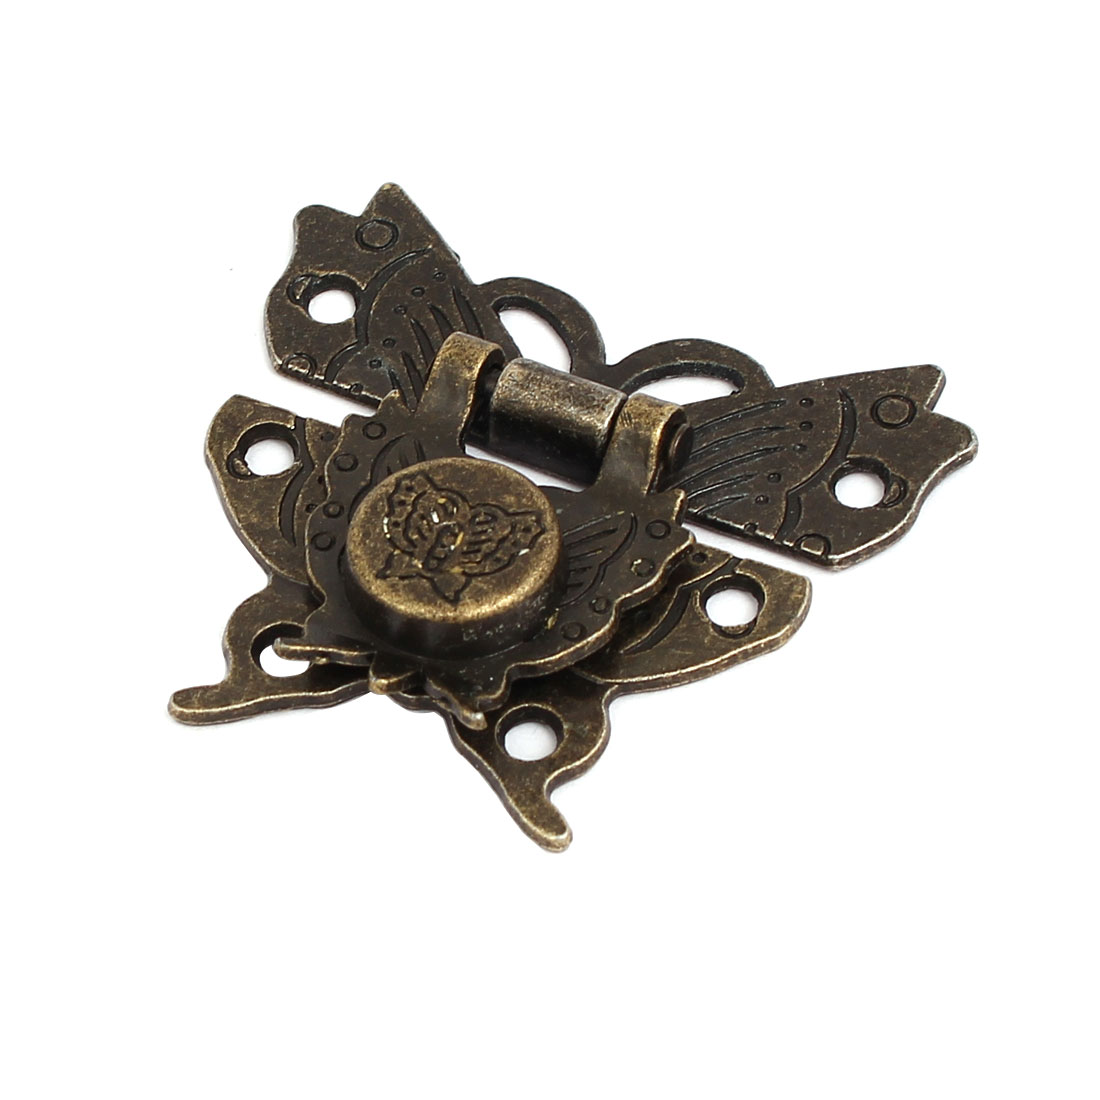 Wooden Box Case Butterfly Design Latch Hasp Lock Bronze Tone 50mmx45mmx8mm